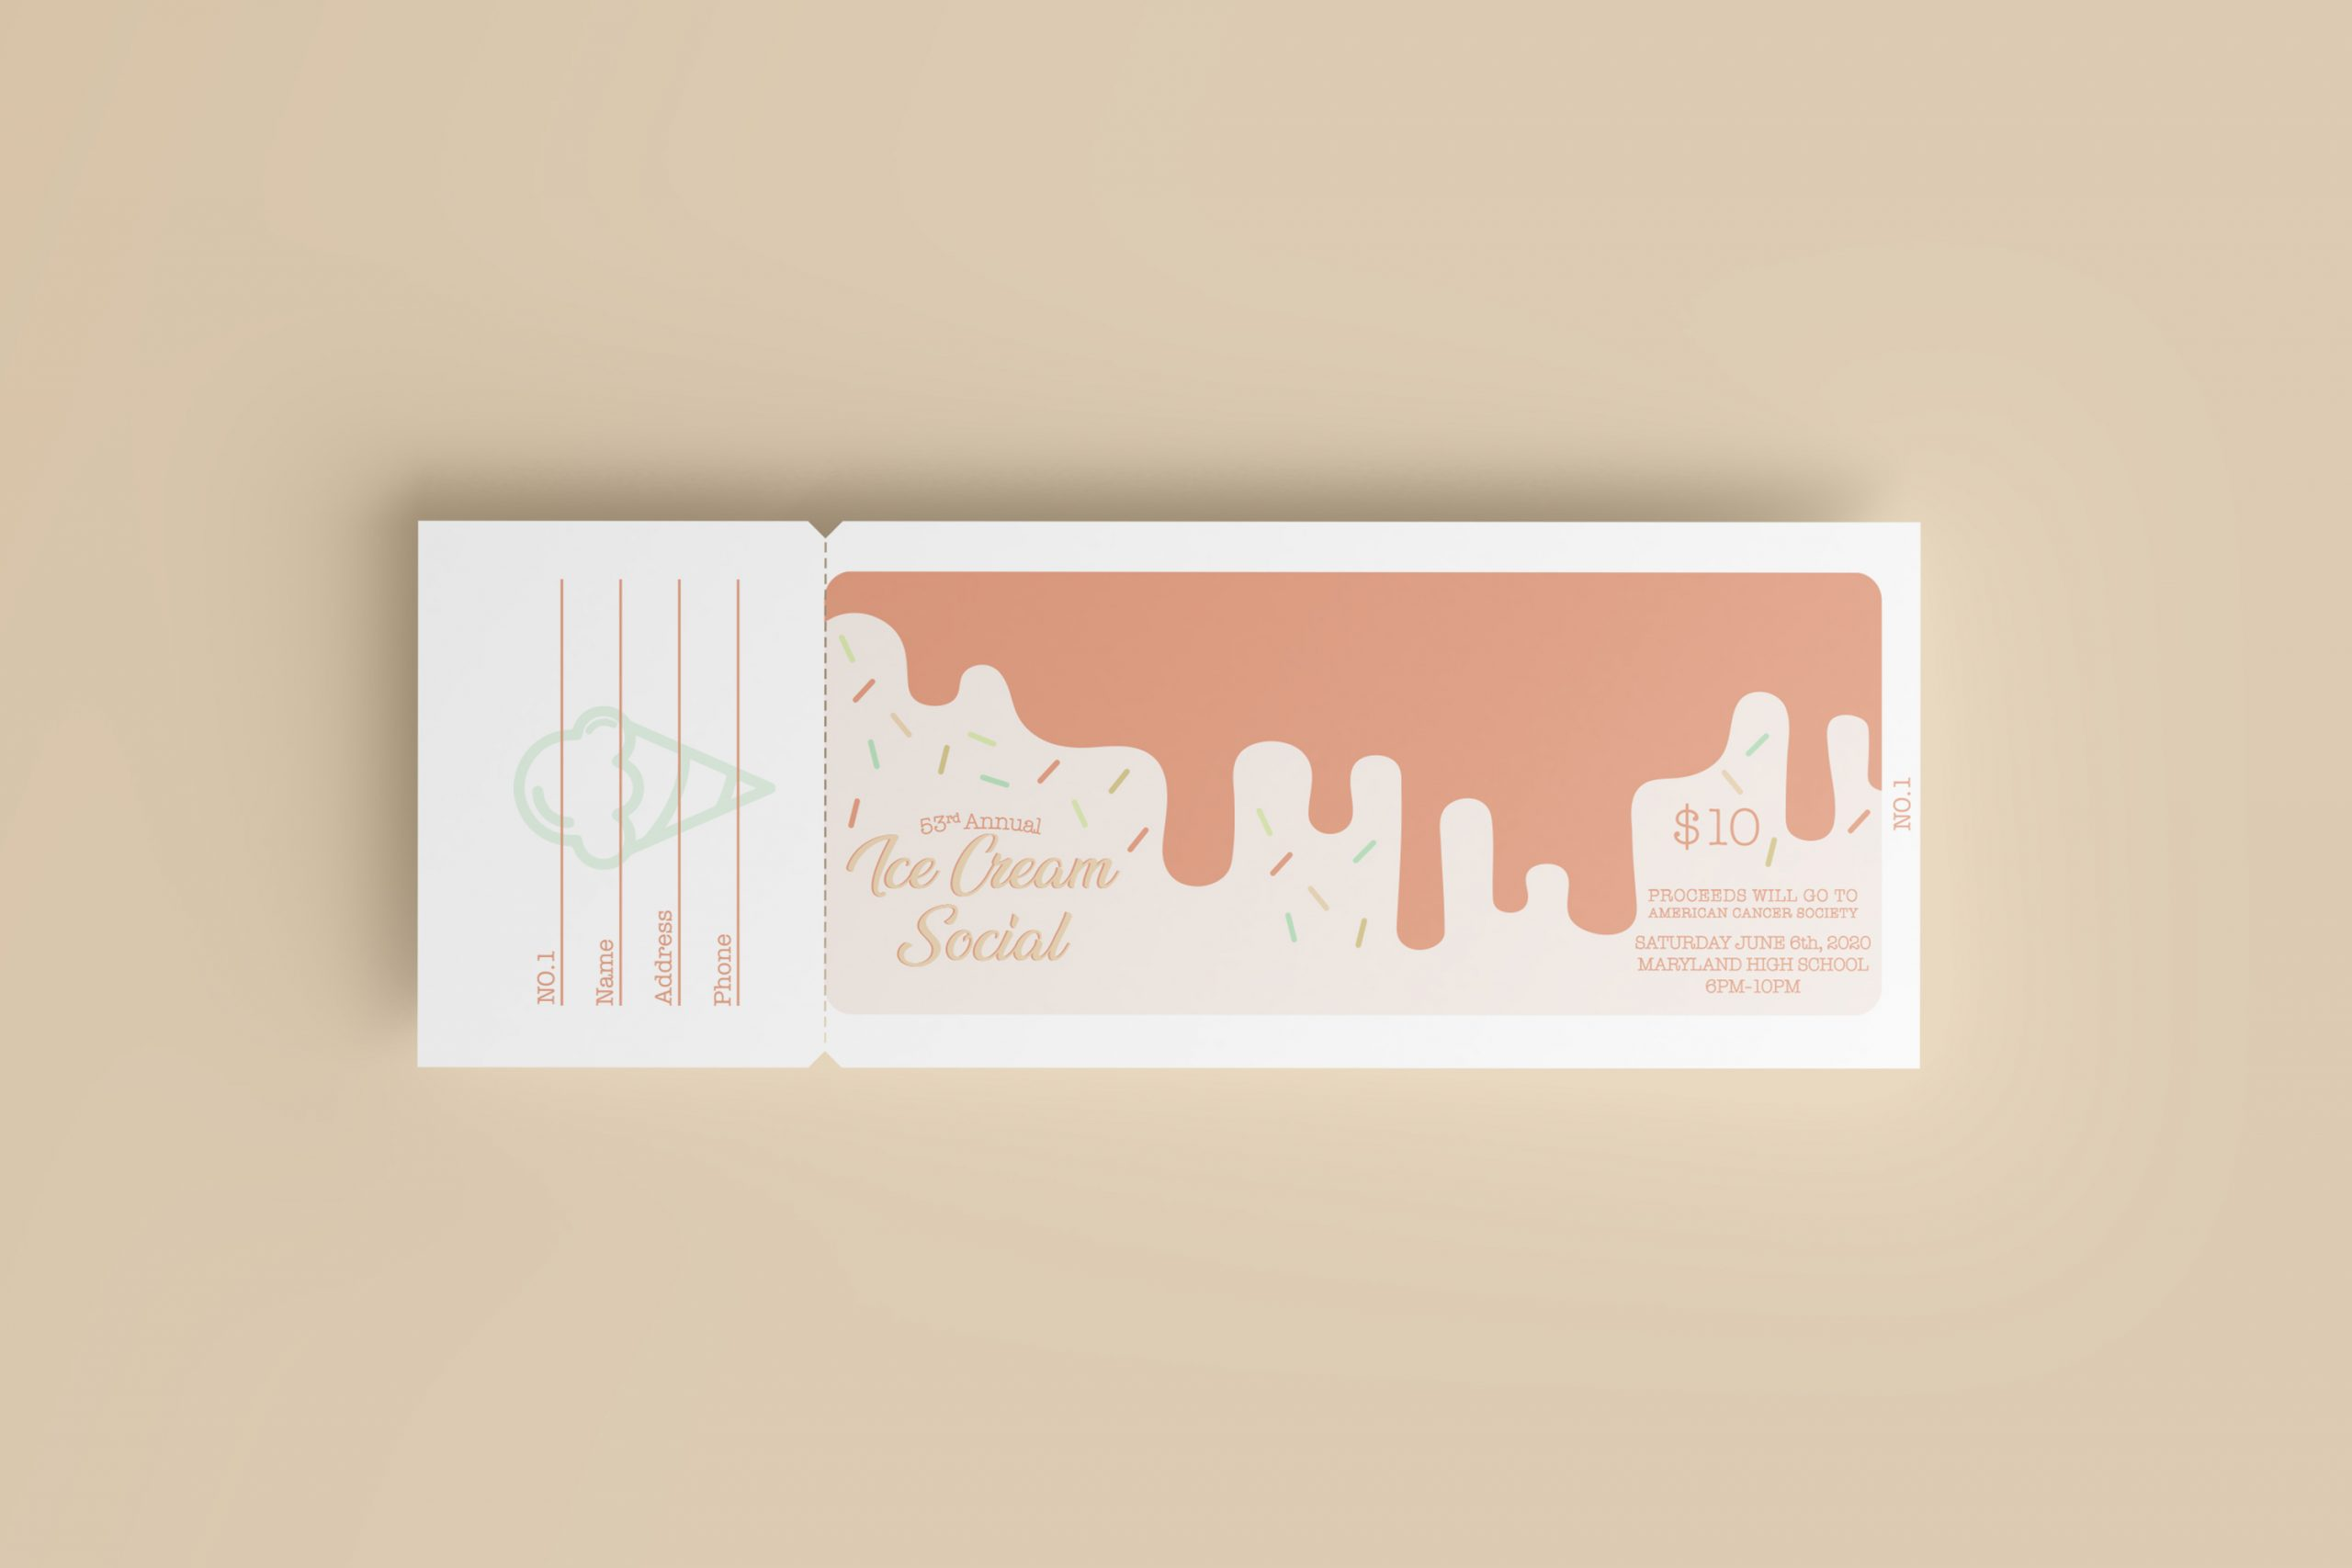 IceCreamSocial_ticketmockup